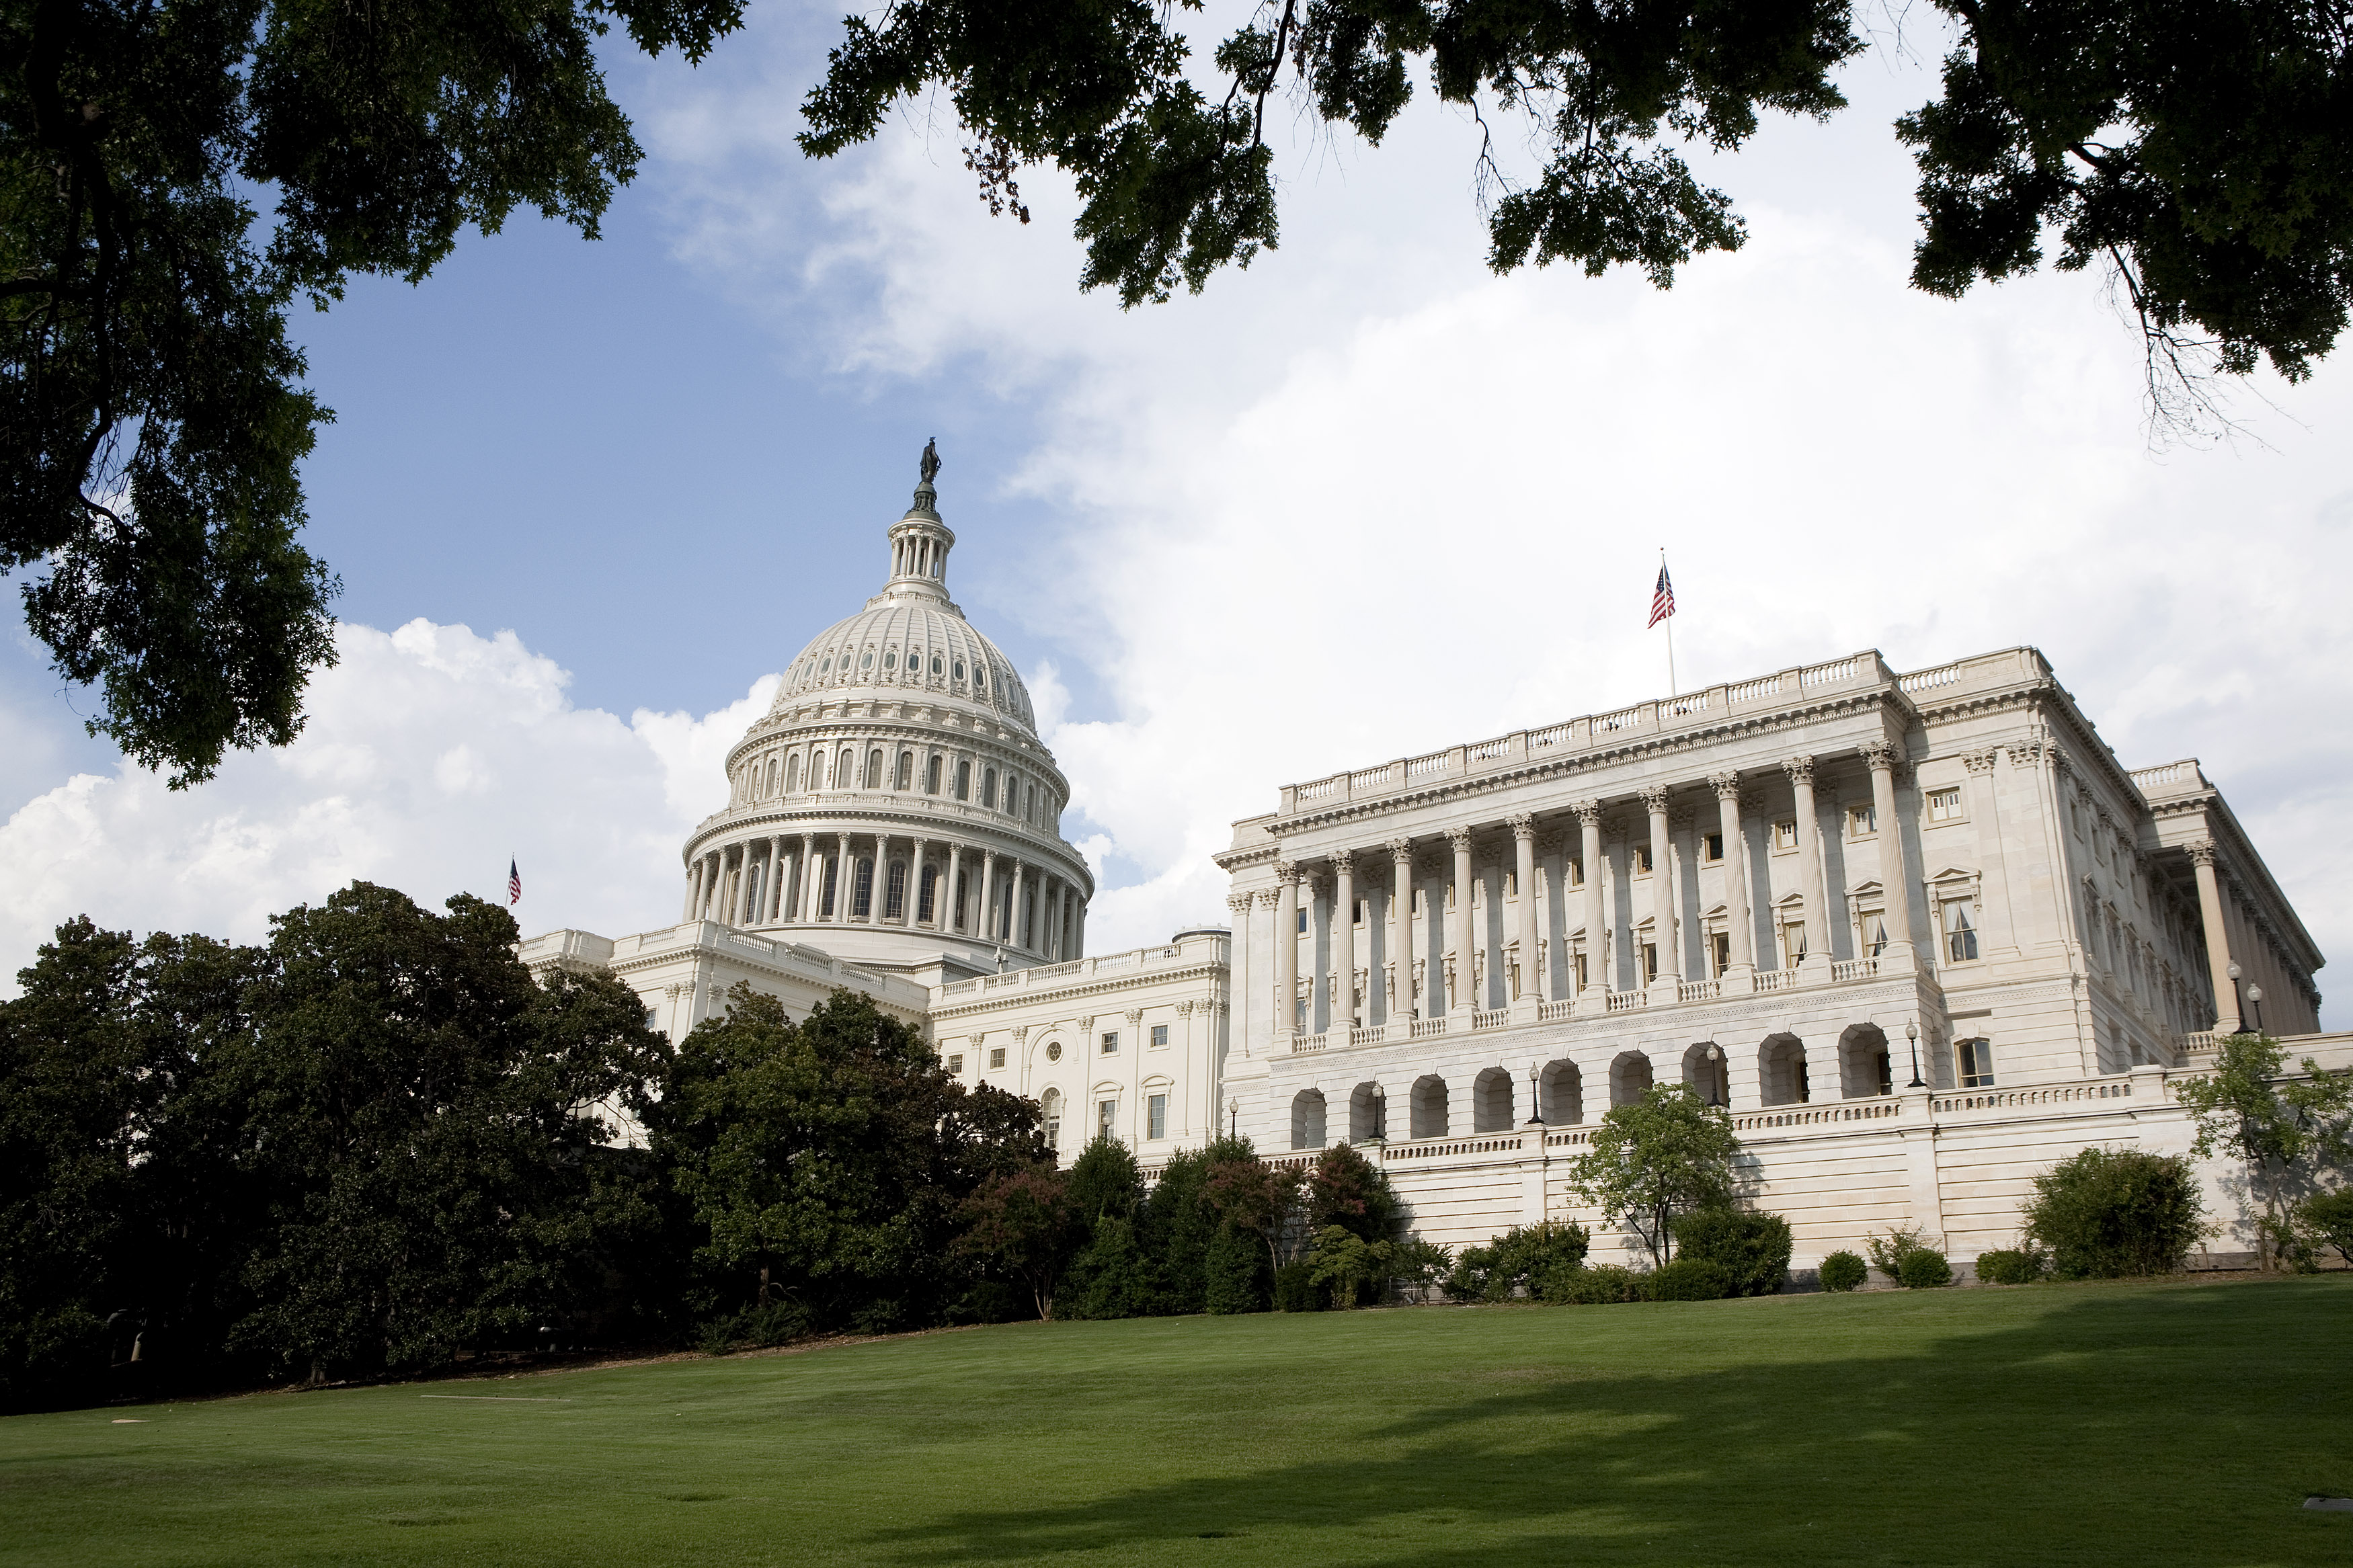 Congress may tell courts to ignore regulatory agencies